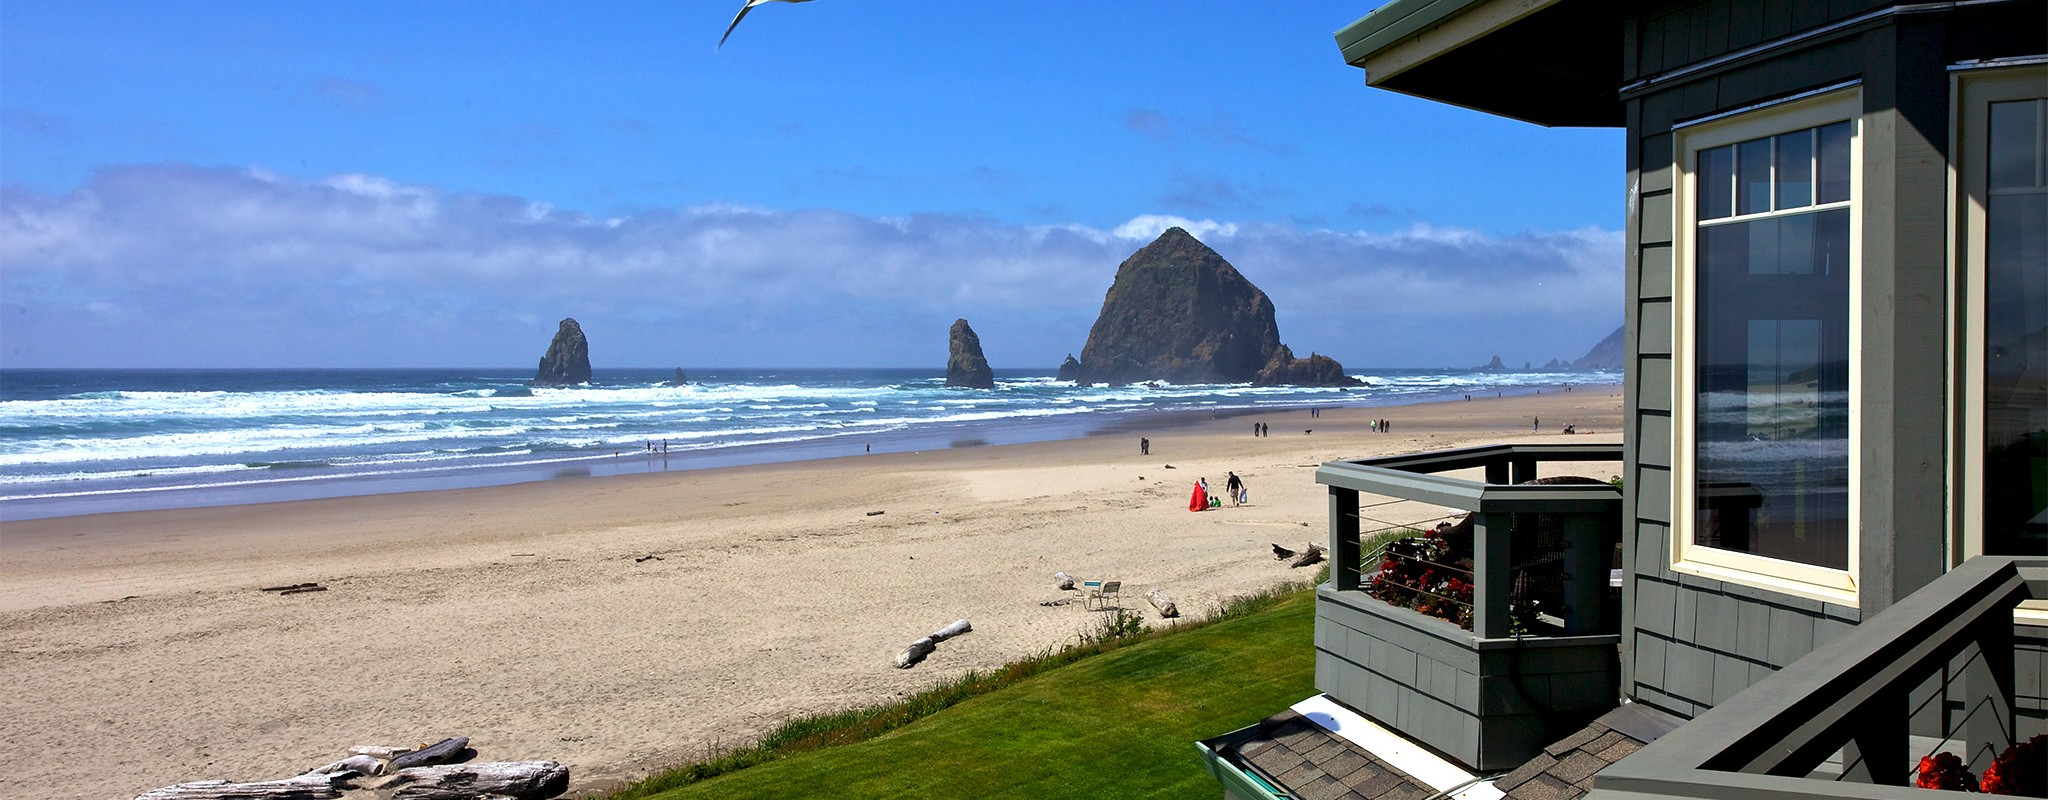 Experience Relaxation In Cannon Beach Oregon At The Stephanie Inn